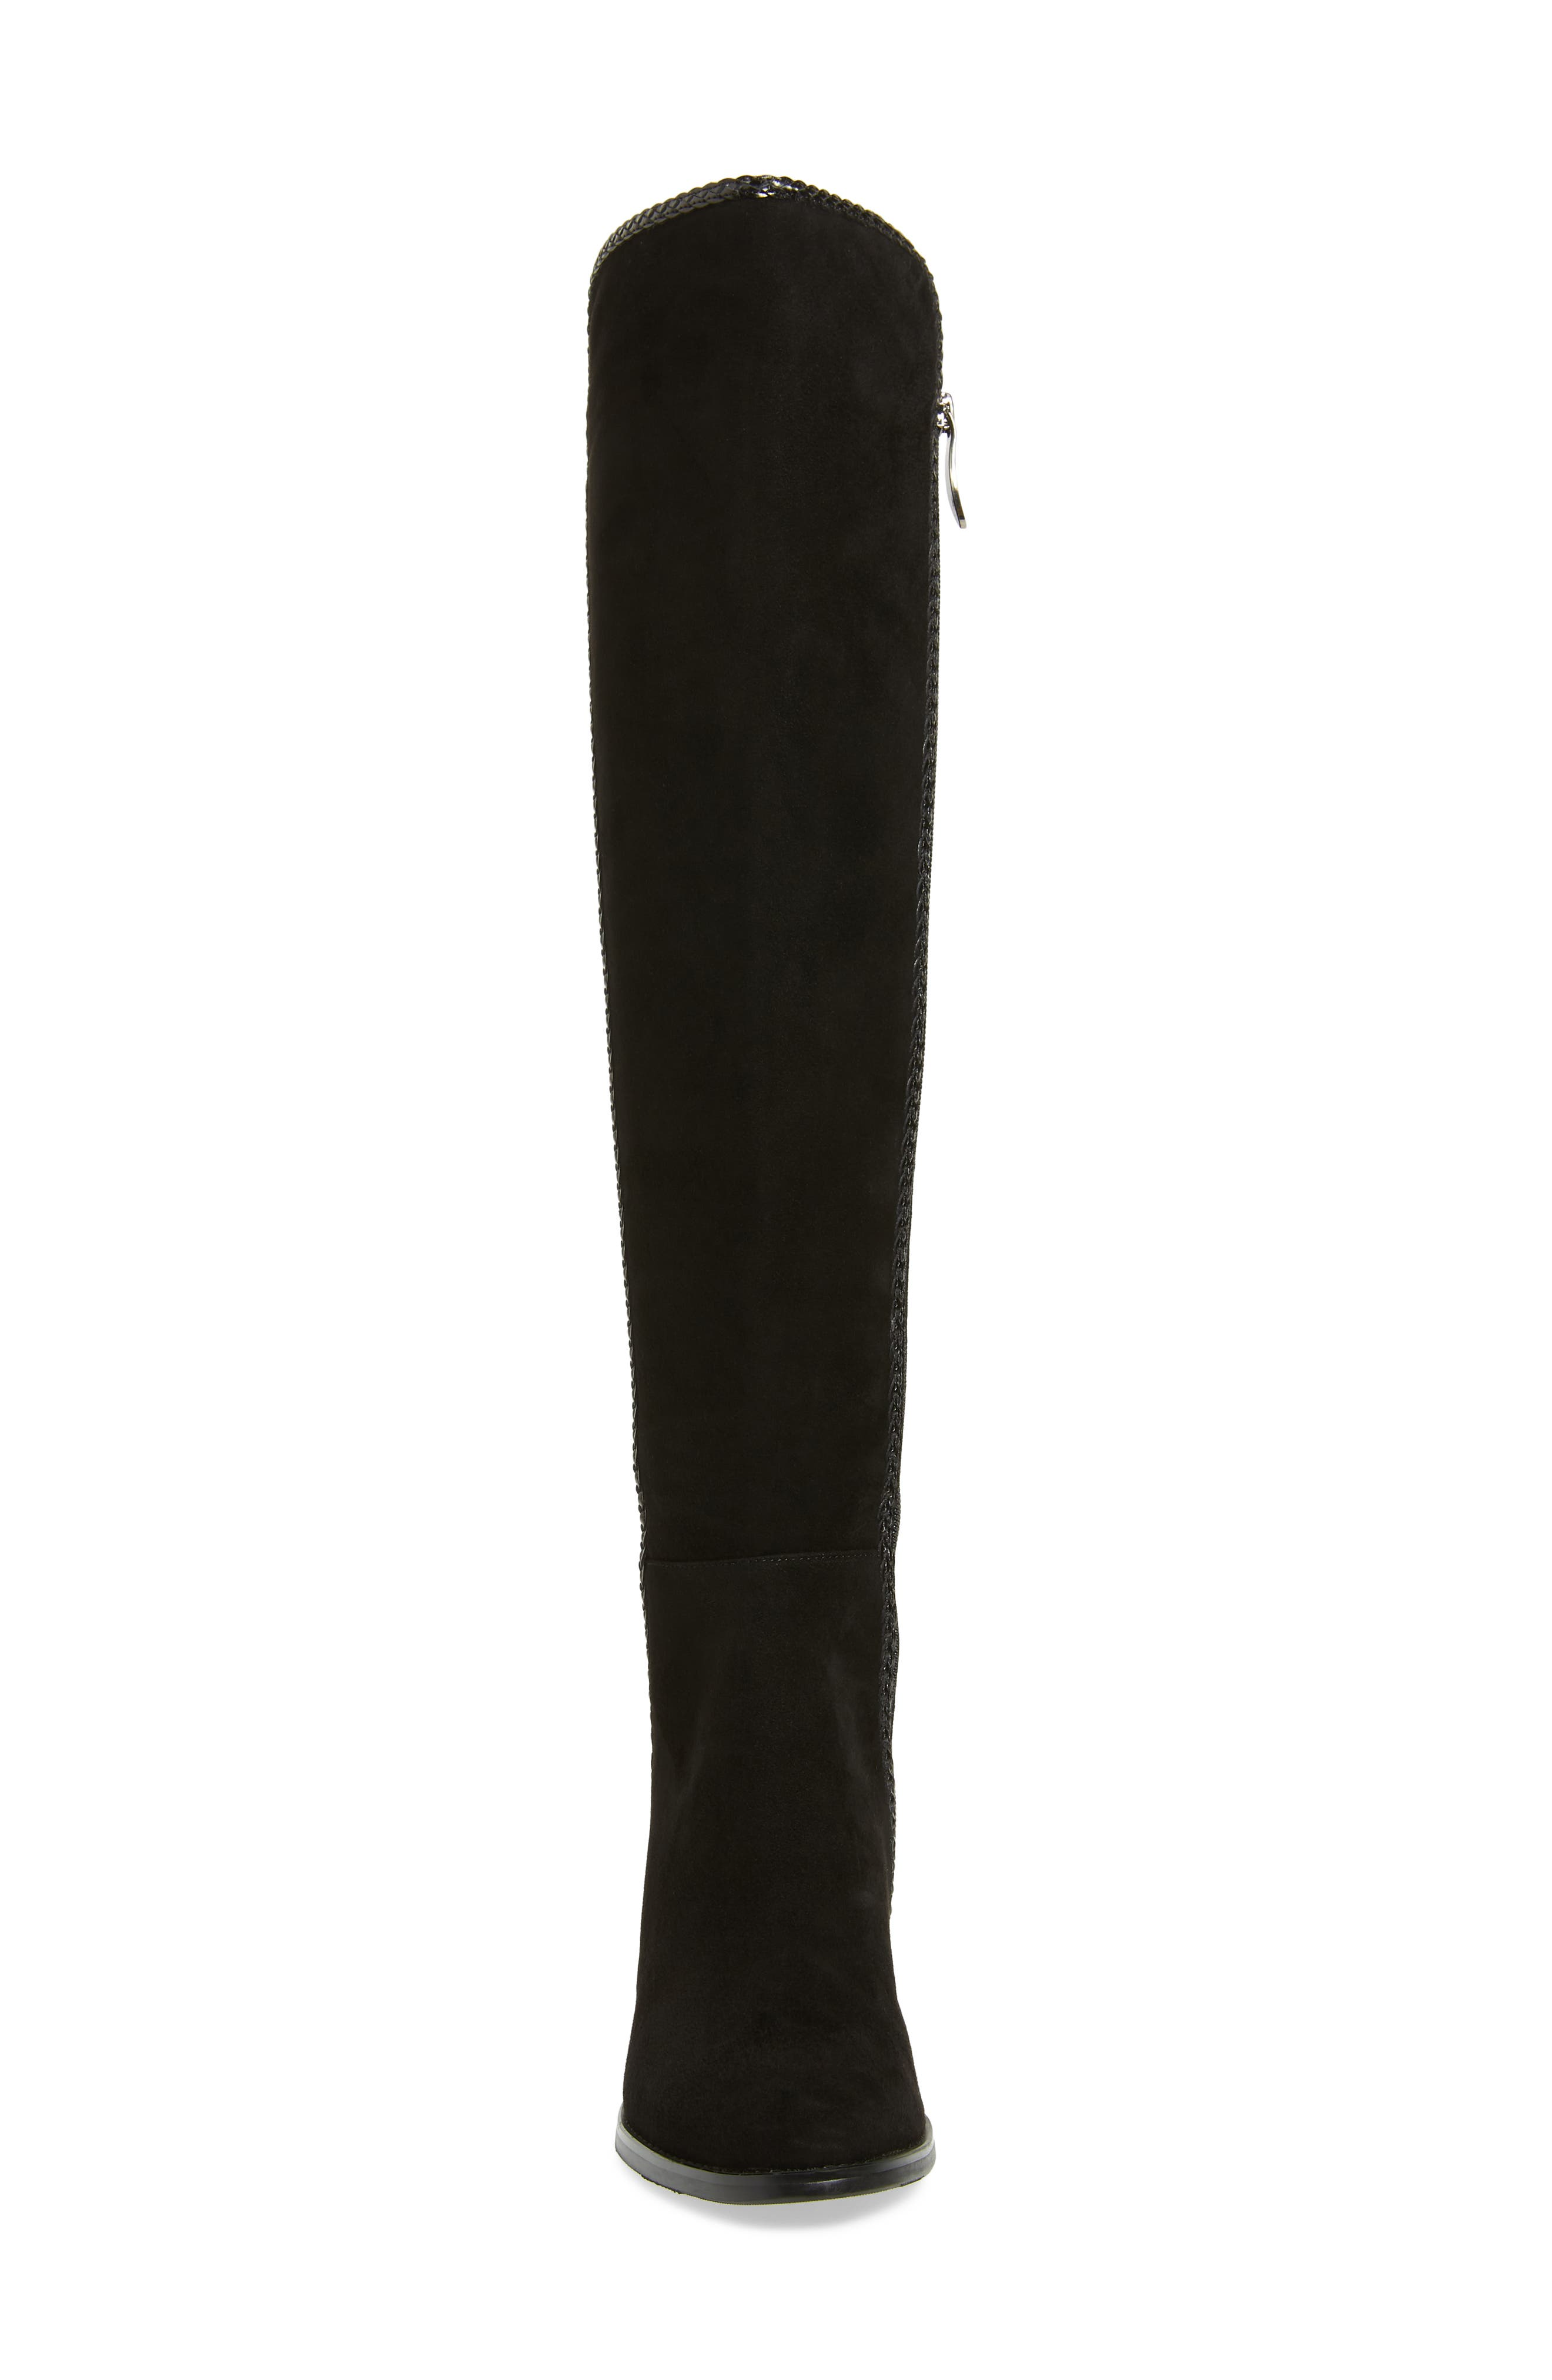 Florence Waterproof Over the Knee Boot,                             Alternate thumbnail 4, color,                             BLACK SUEDE